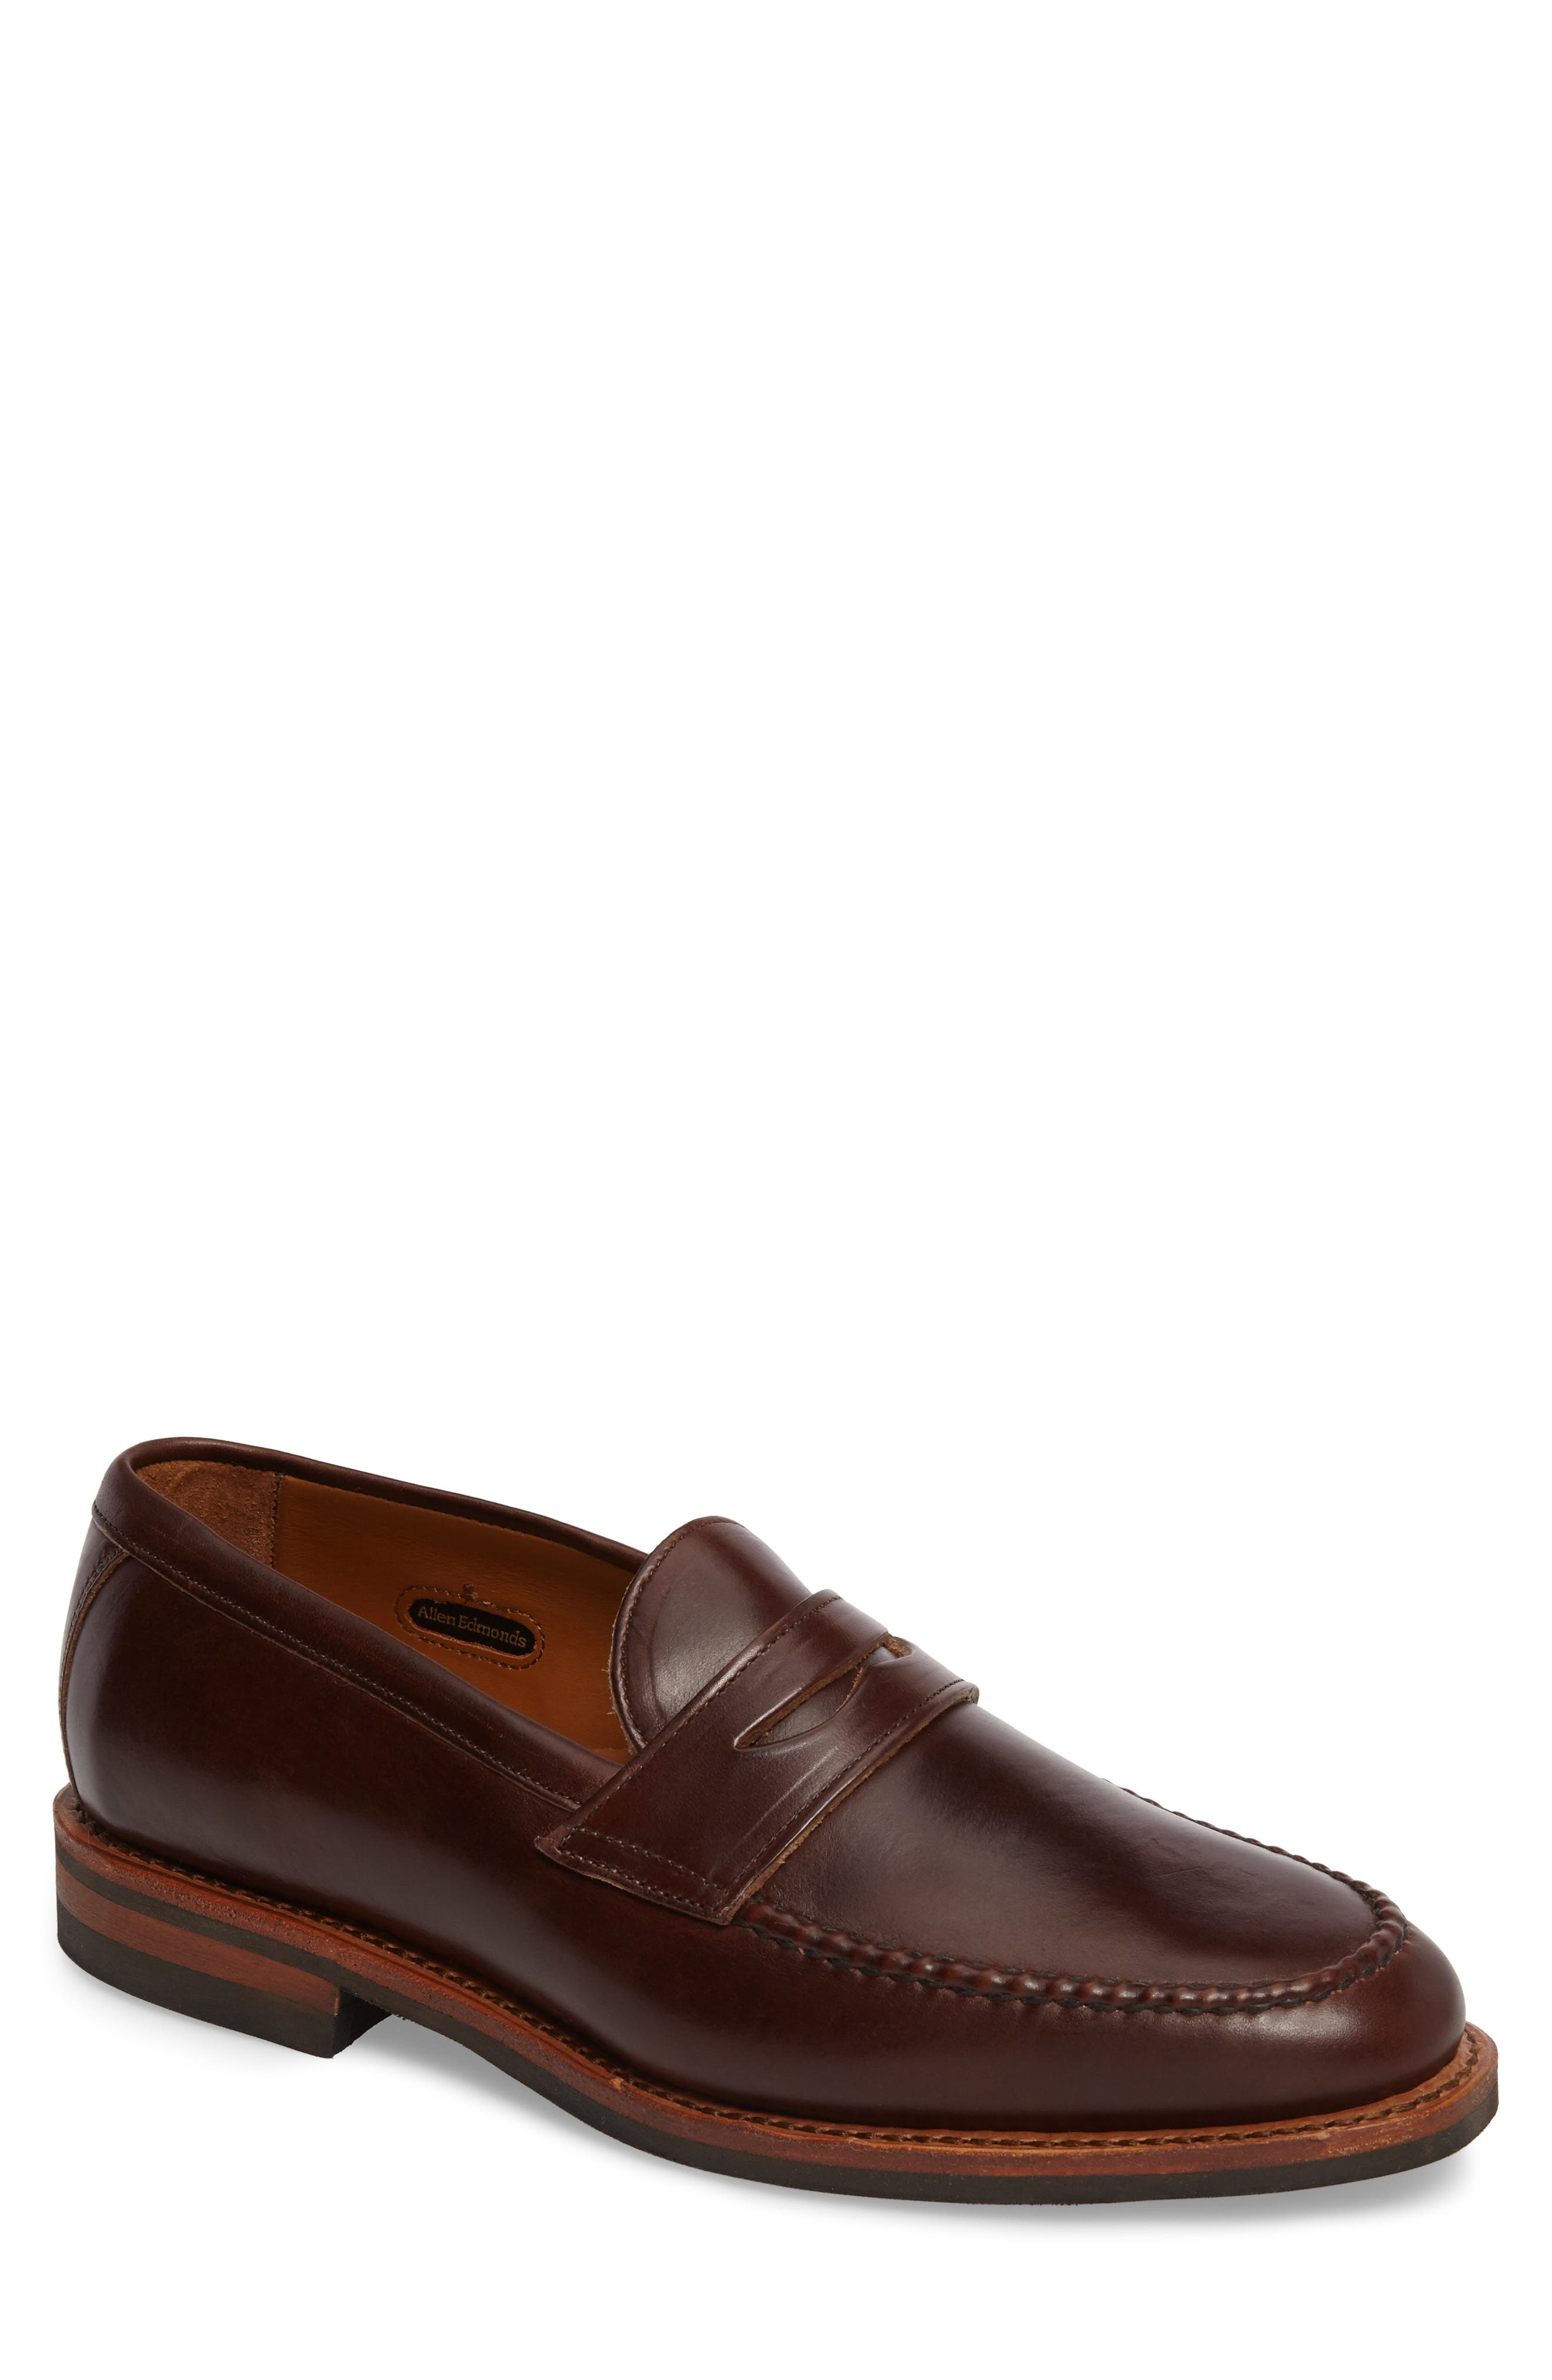 Main Image - Allen Edmonds Addison Penny Loafer (Men)